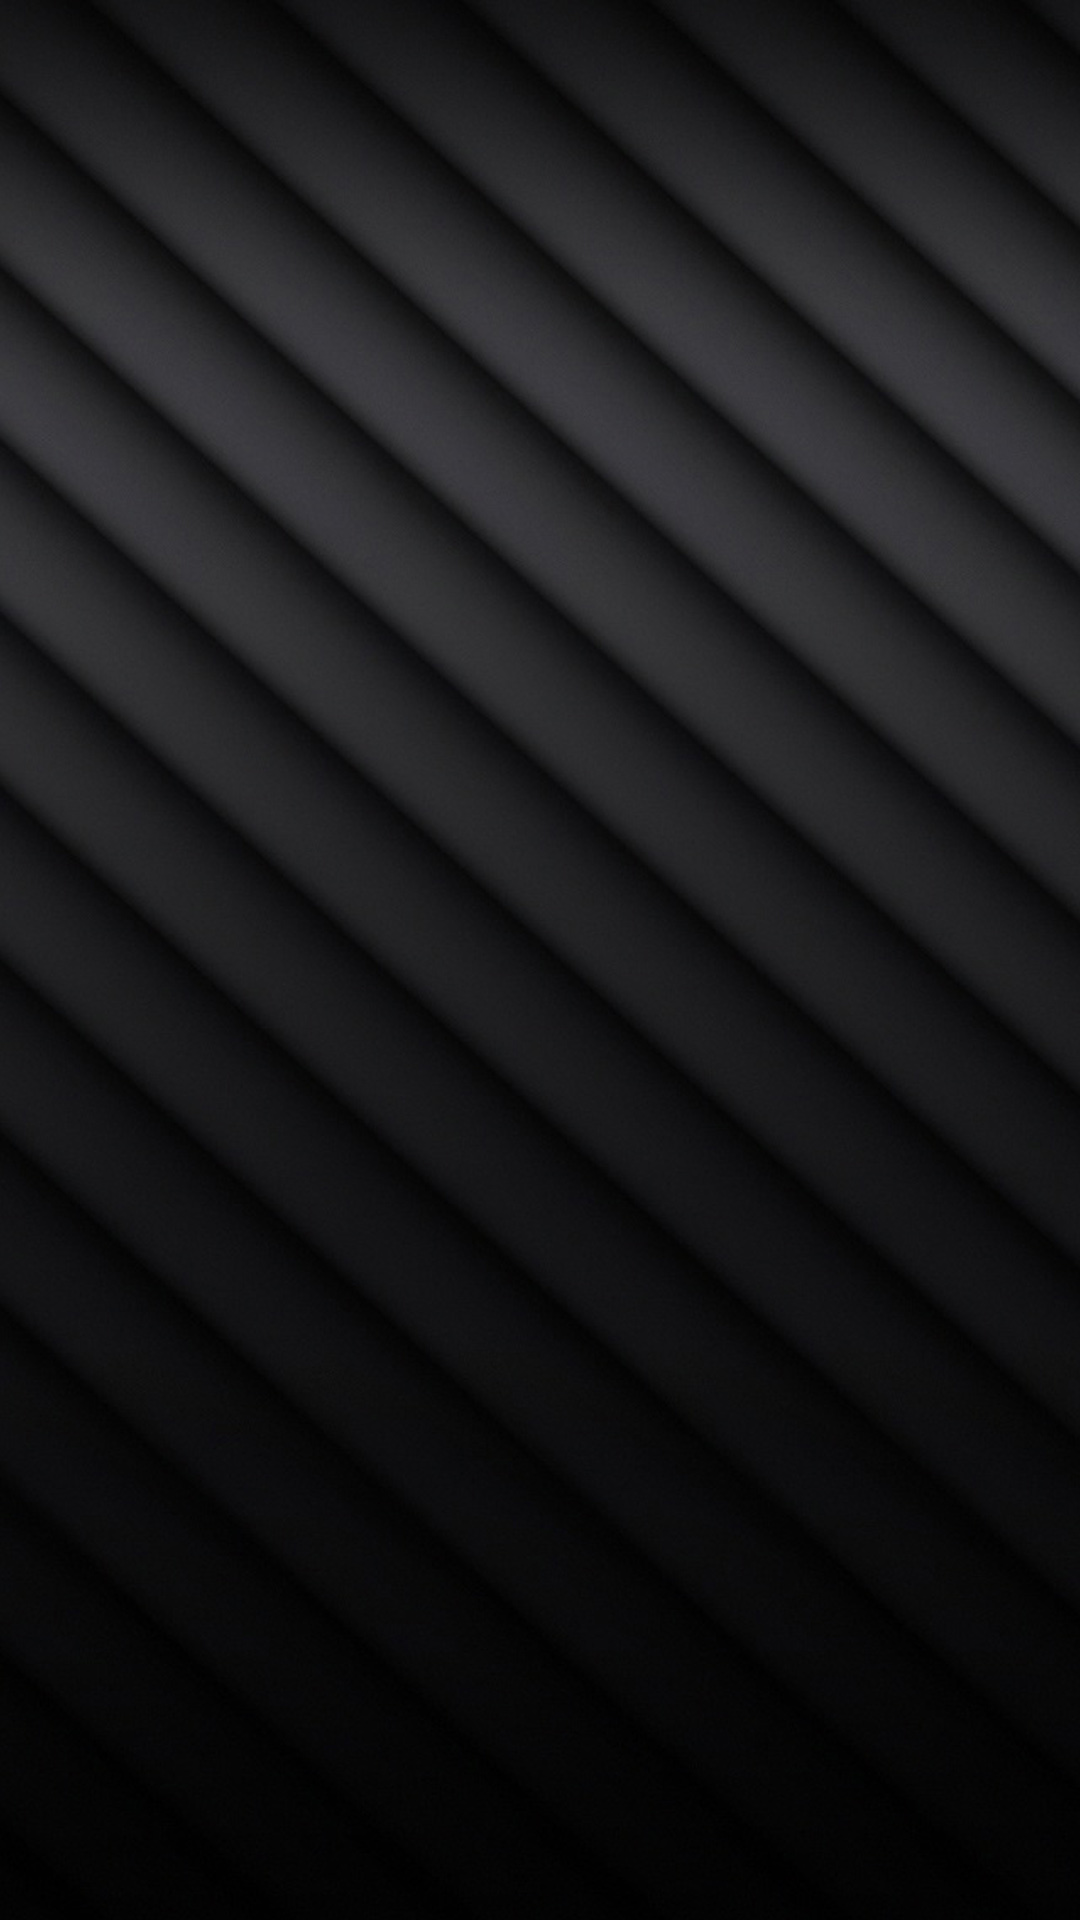 Black Wallpaper For Note 3